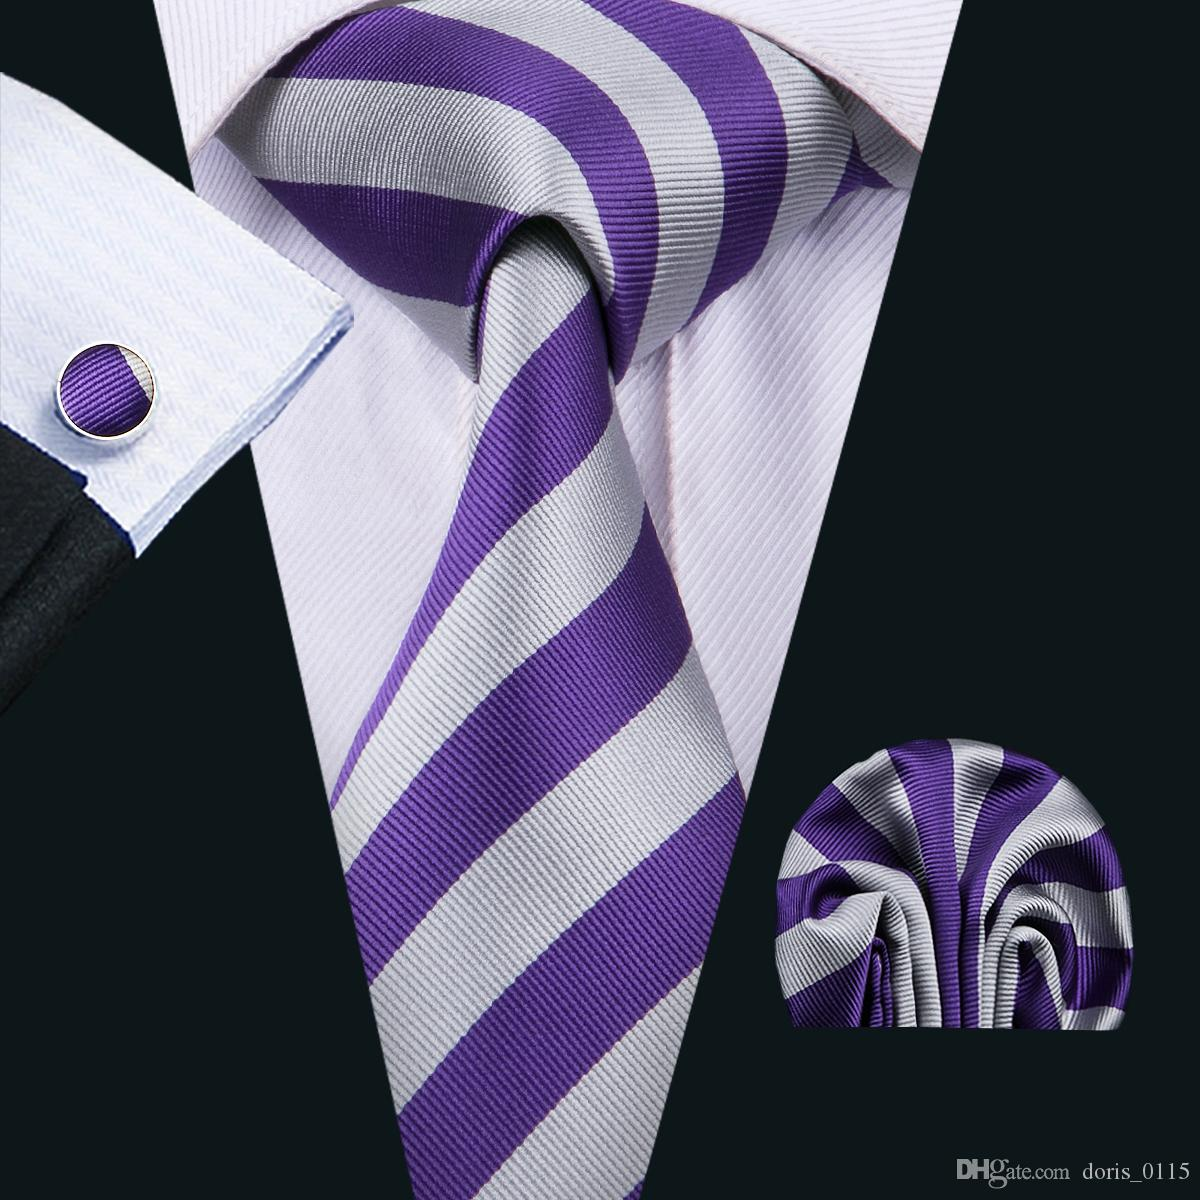 2018 clasic silk men ties purple tie sets strips mens neck tie tie 2018 clasic silk men ties purple tie sets strips mens neck tie tie hanky cufflinks sets jacquard woven meeting business wedding party n 1513 from doris0115 ccuart Image collections